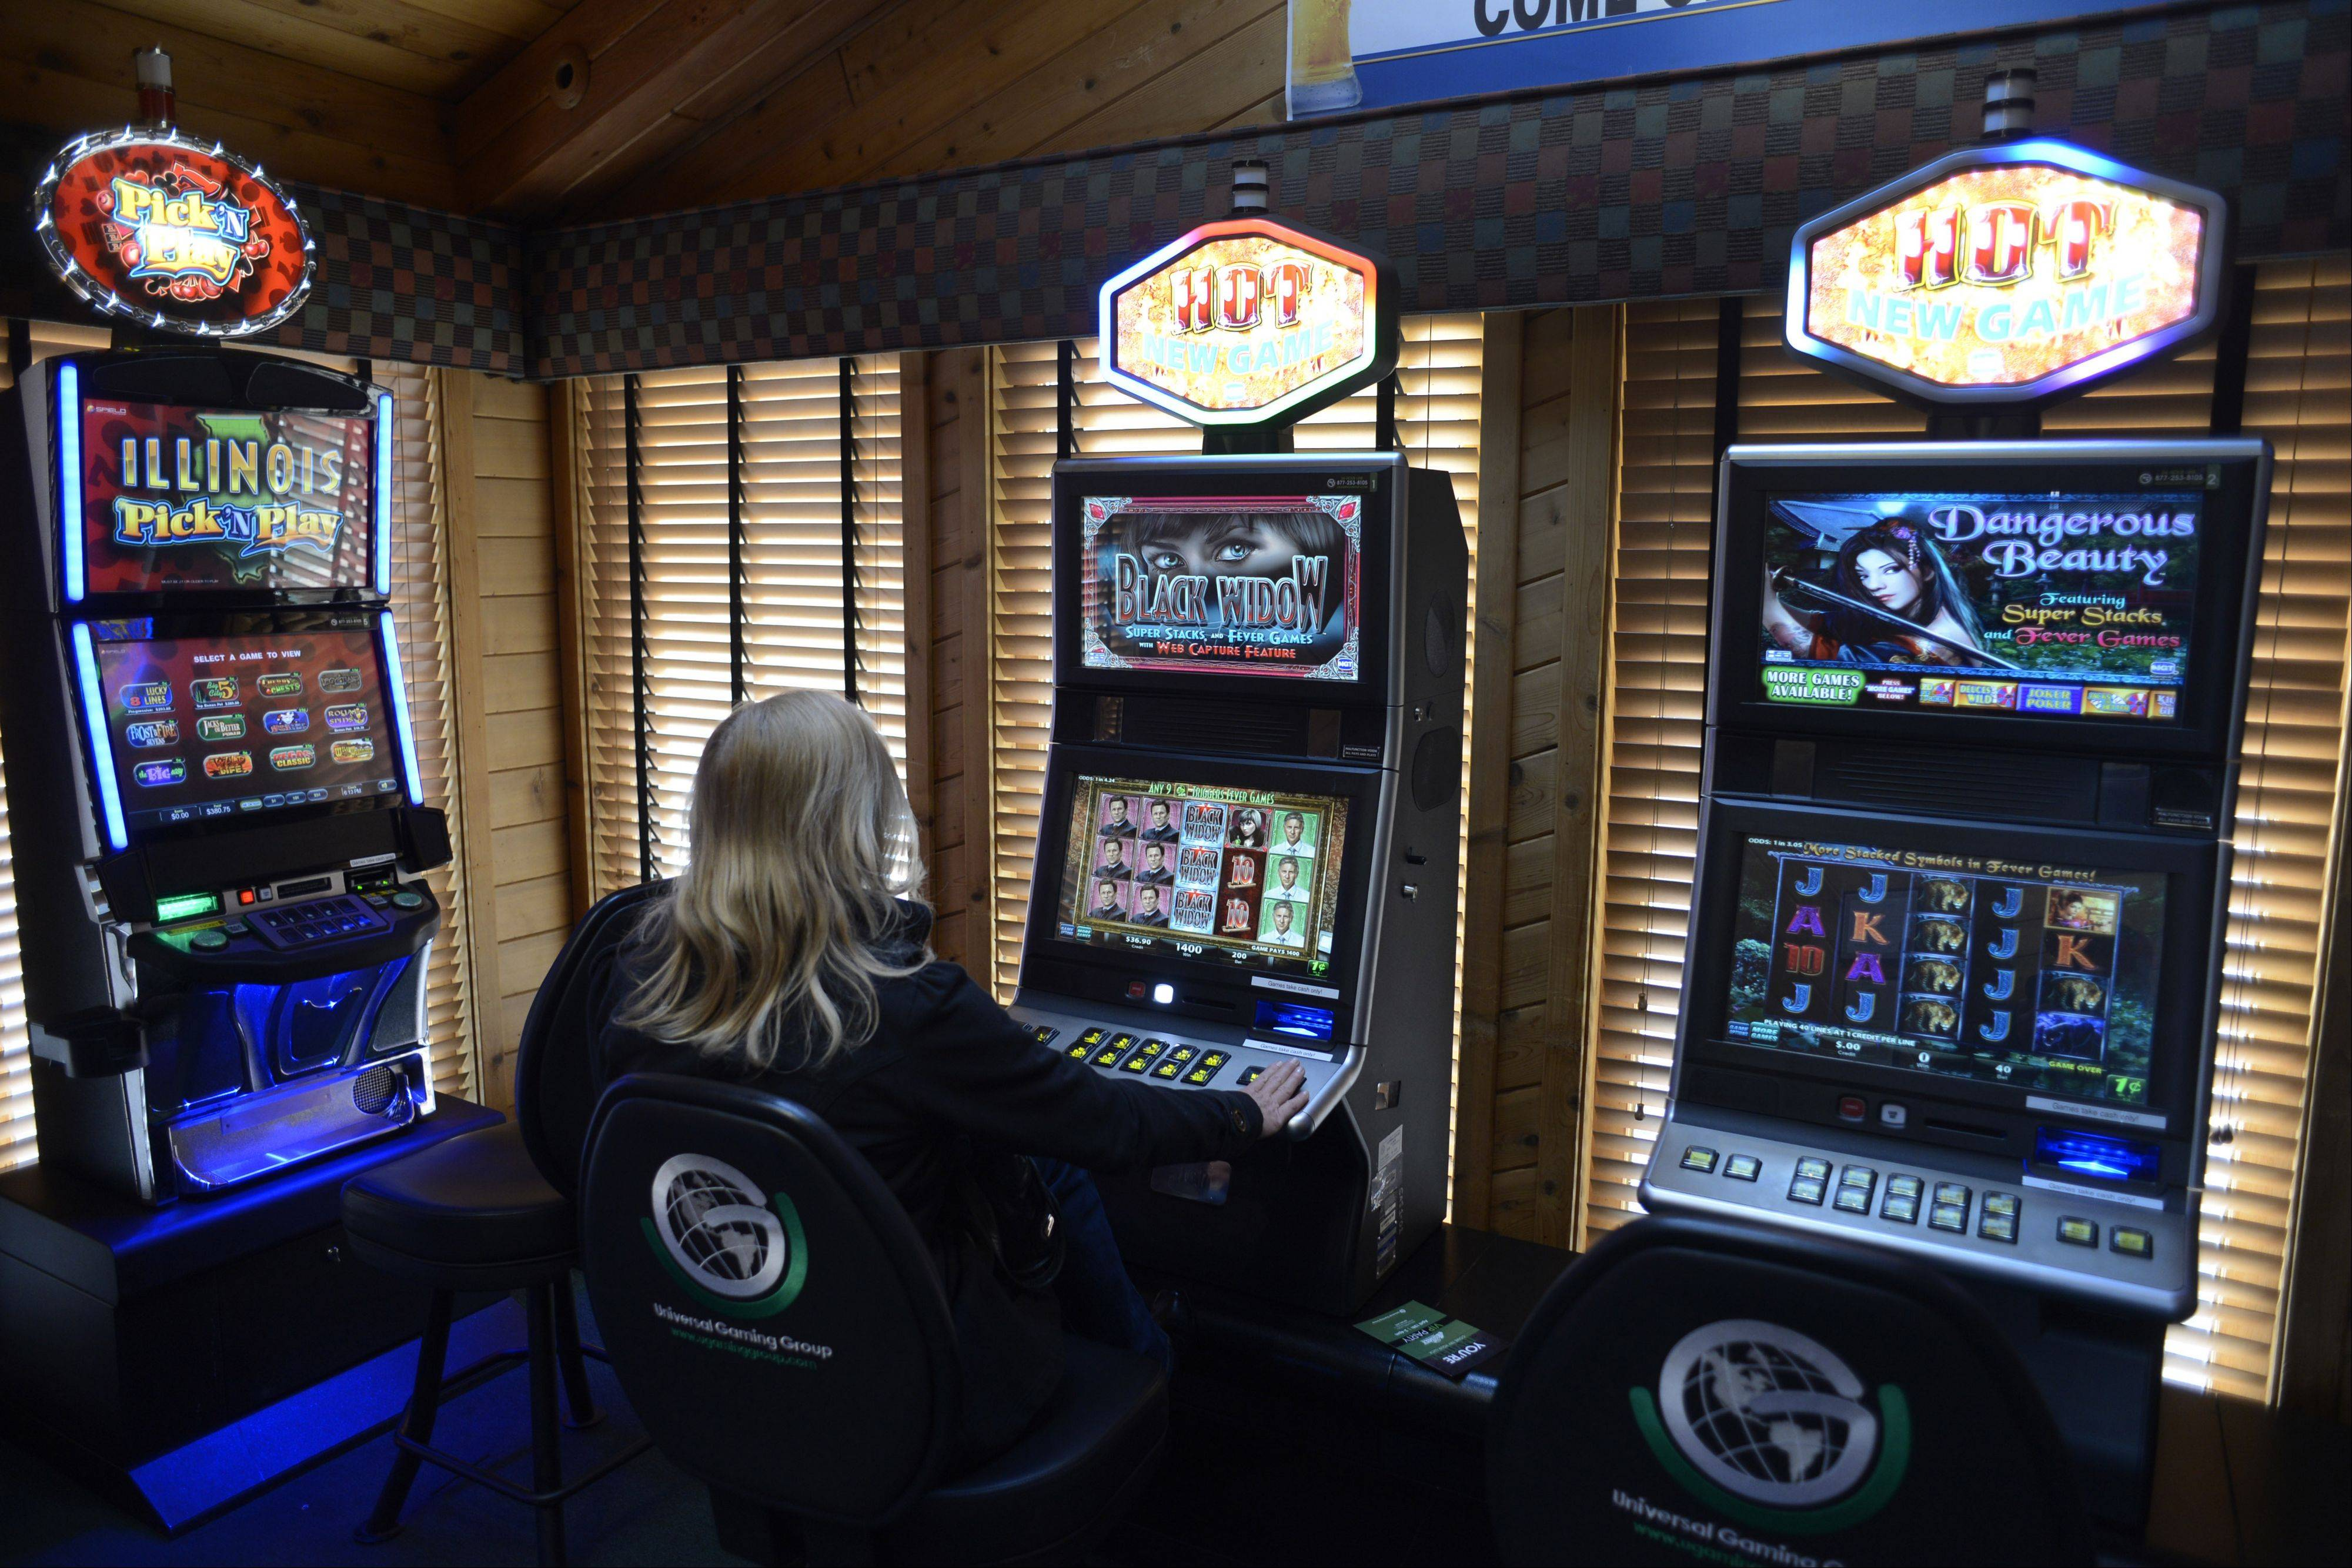 Daily Herald File PhotoA patron plays a video gambling machine in Hoffman Estates.